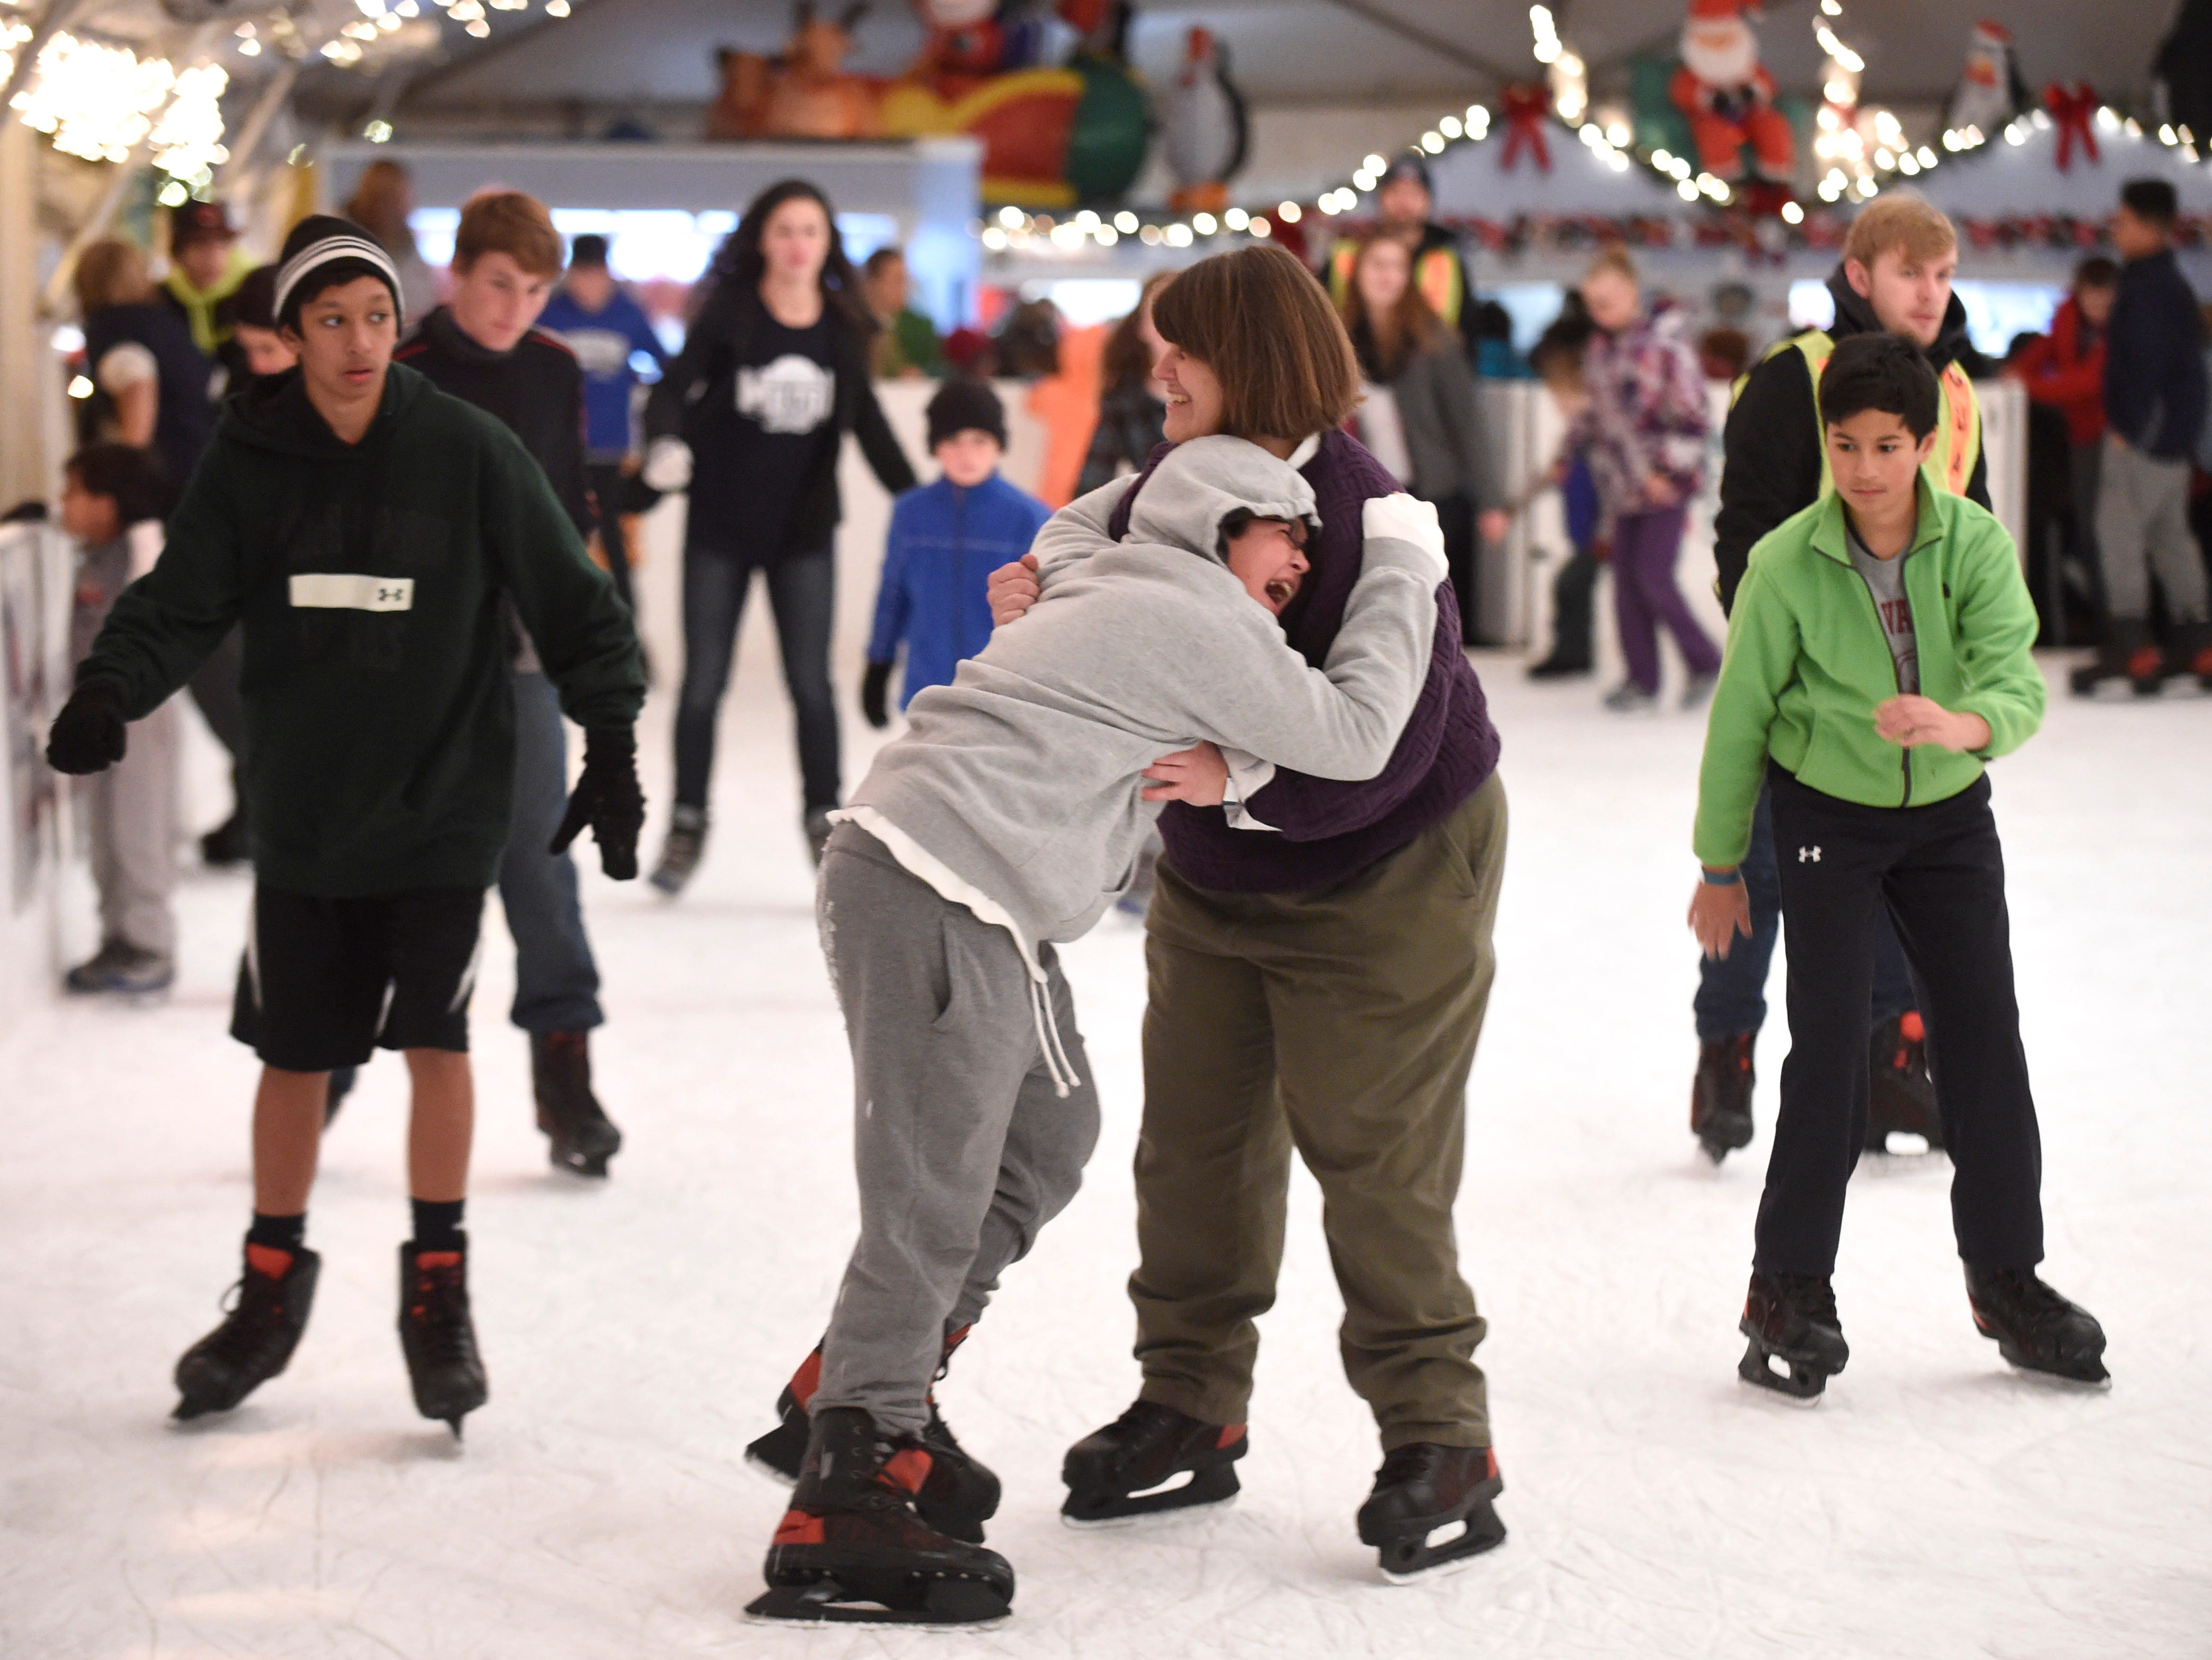 John Robert Boyd, 11, laughs while clinging to Karen Boyd in hopes of avoiding a fall on the ice rink in Market Square during Christmas in the City festivities in downtown Knoxville on Friday, Nov. 28, 2014.